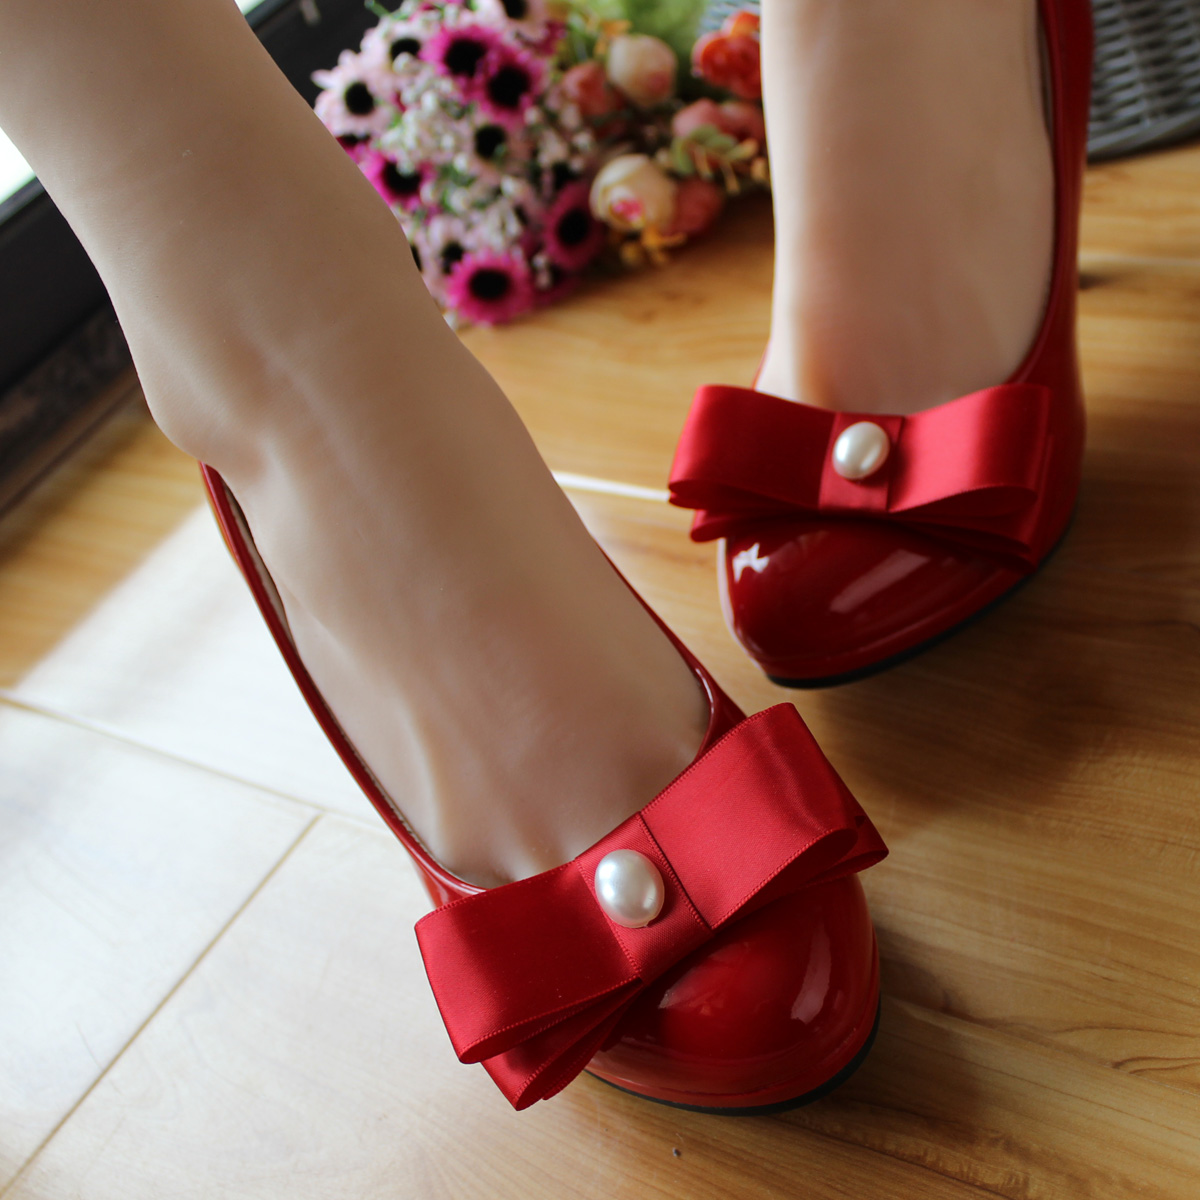 Where To Buy Red High Heels